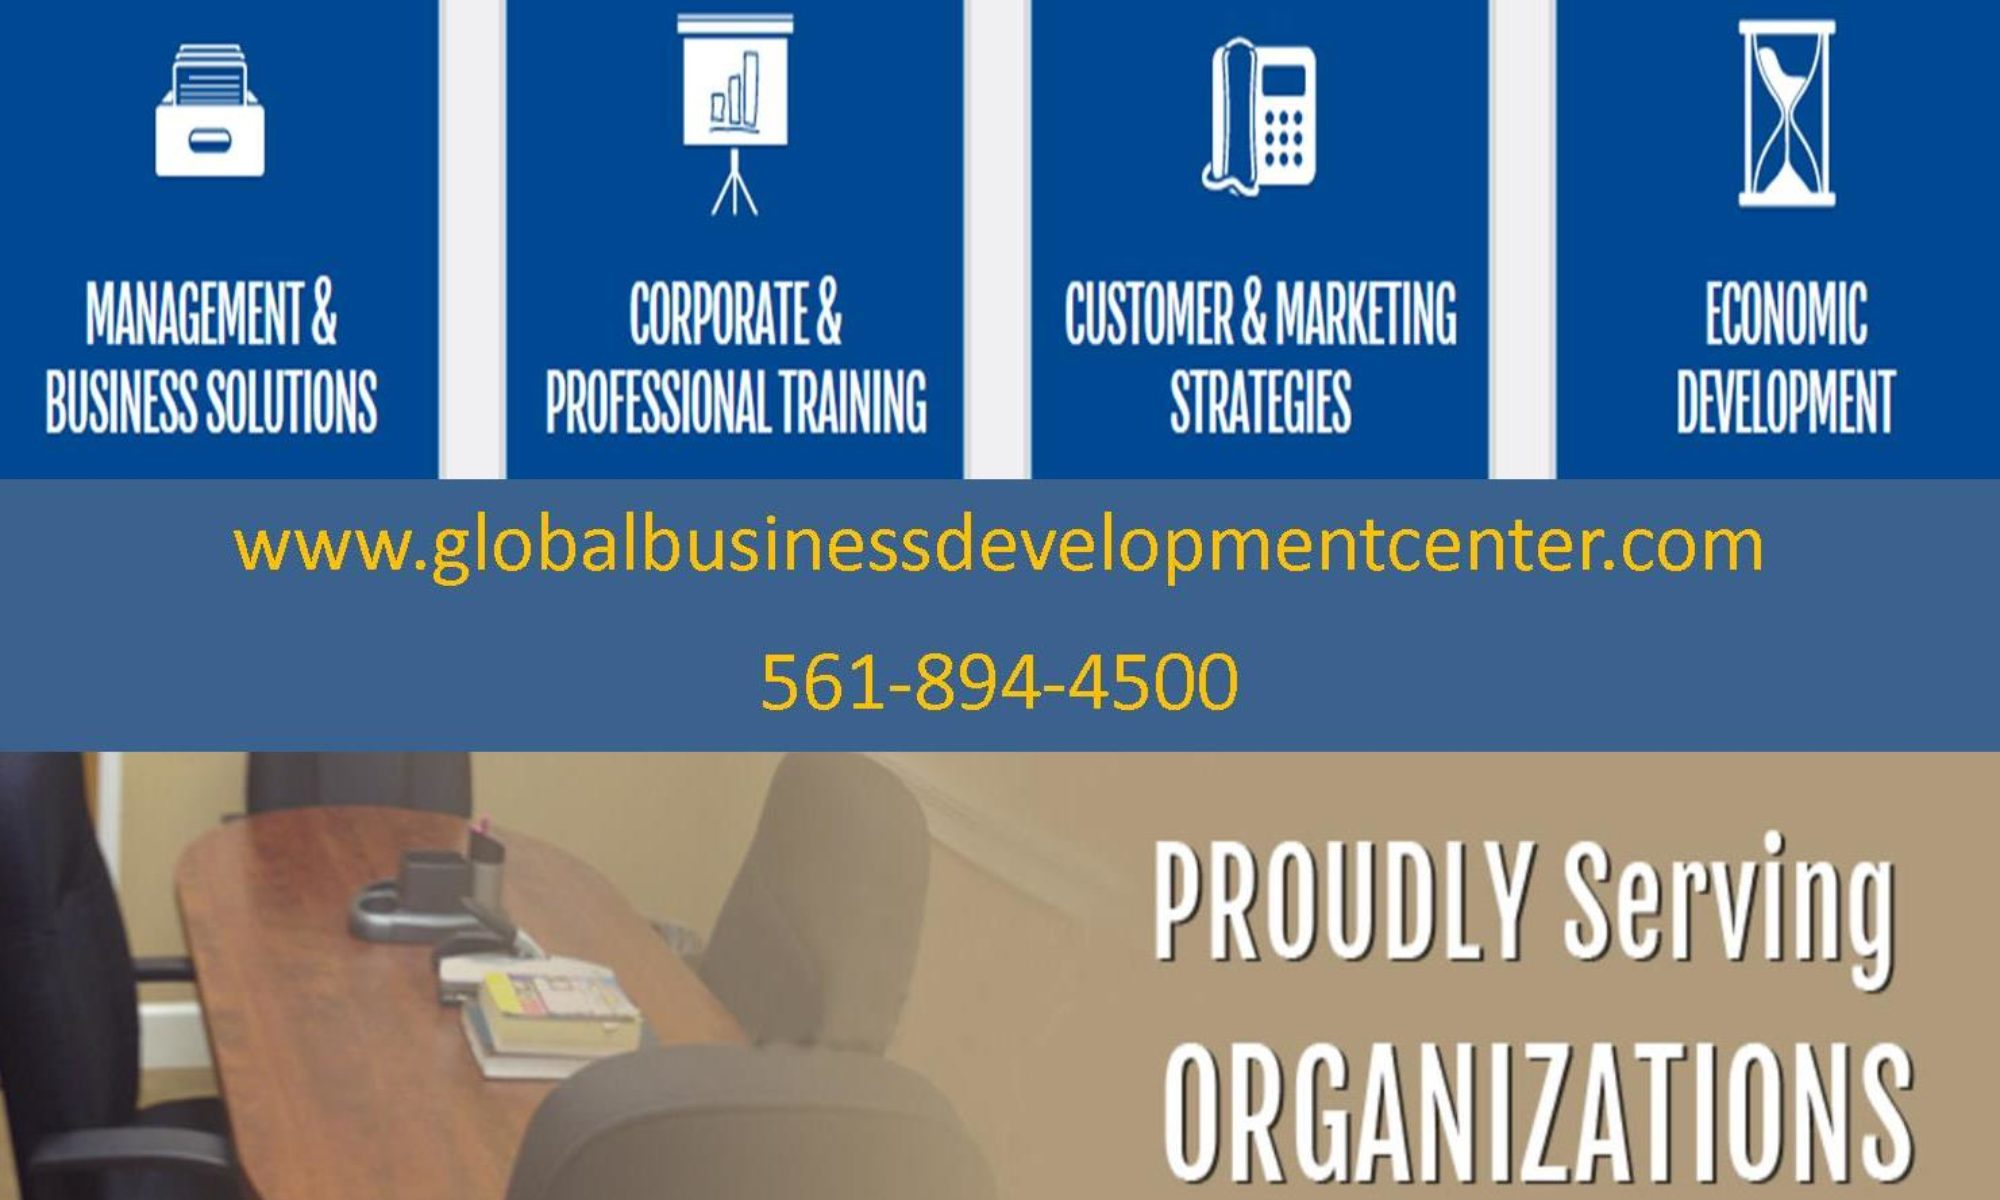 Global Business Development Center management skills